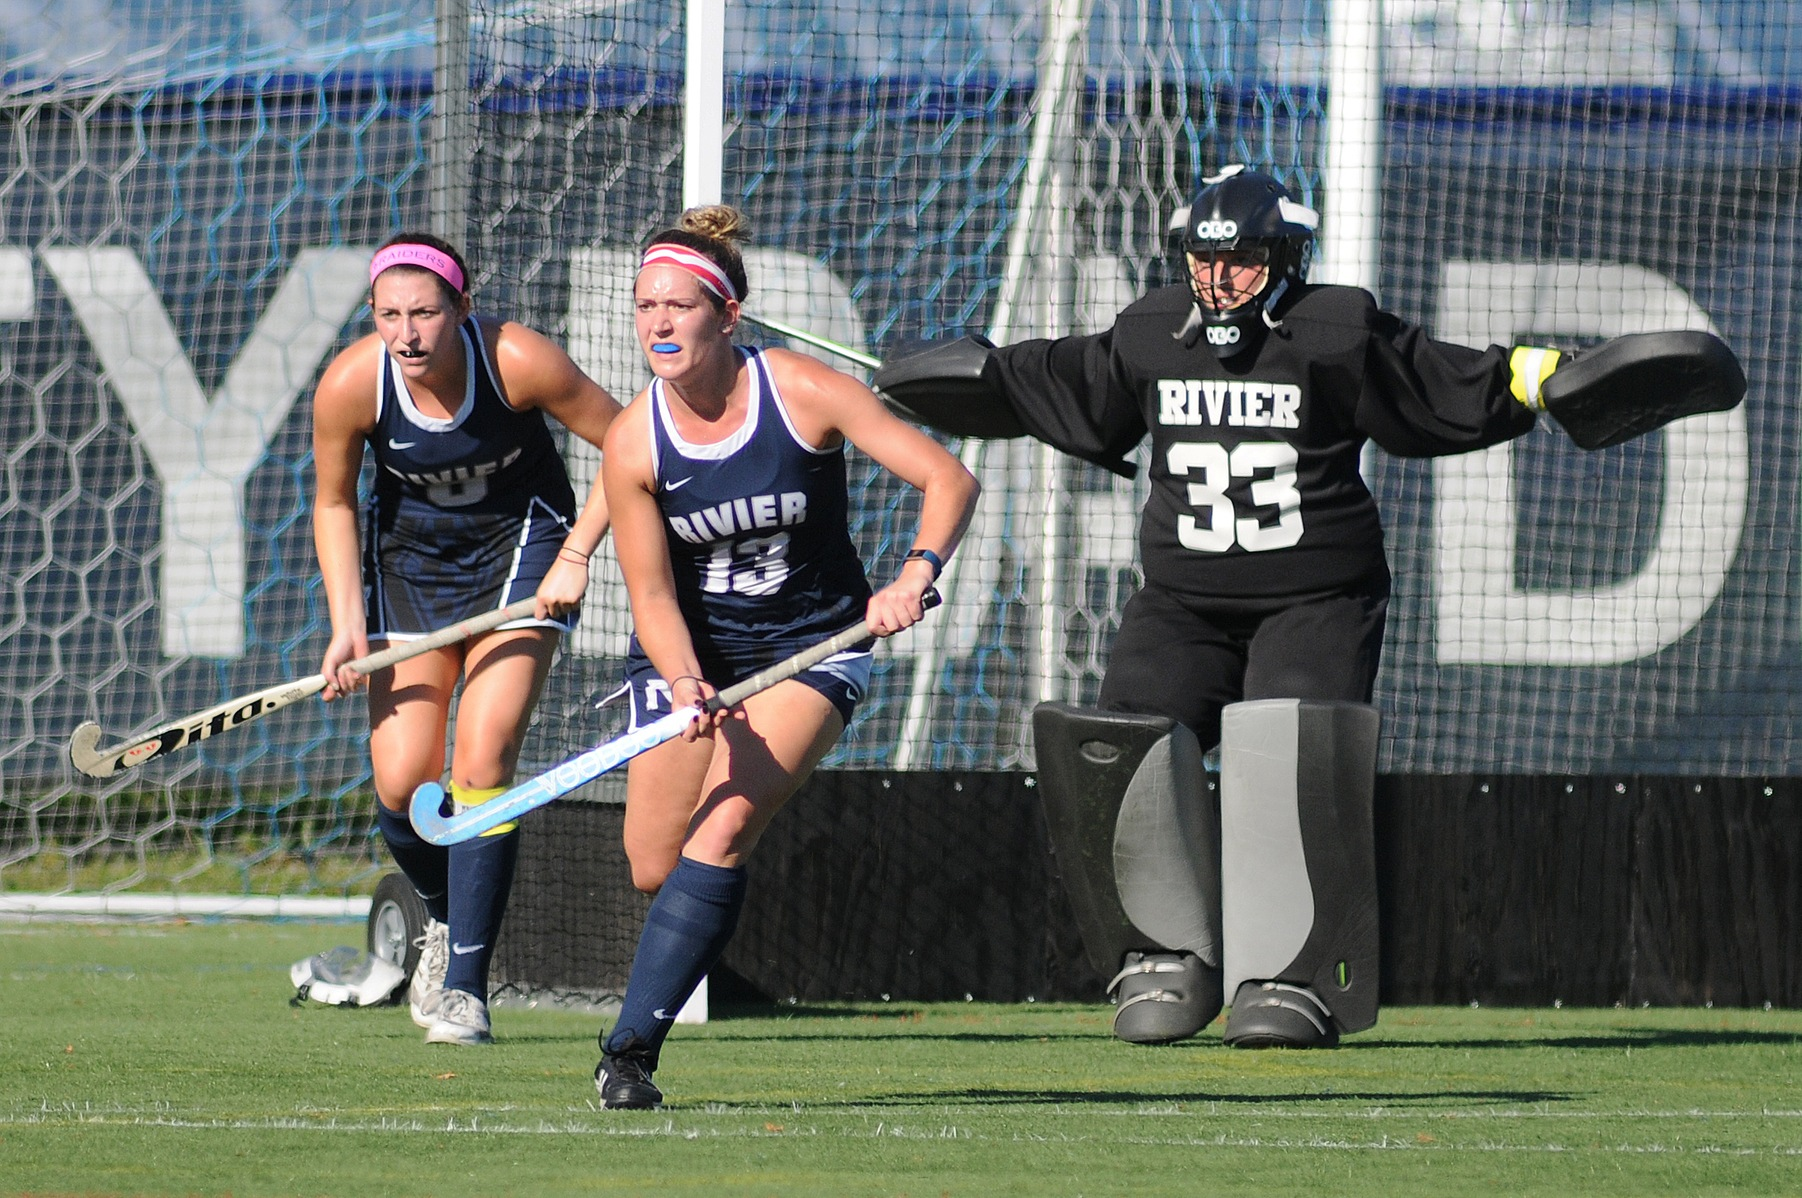 Field Hockey: Seniors close out careers with 10-0 win over Albertus Magnus